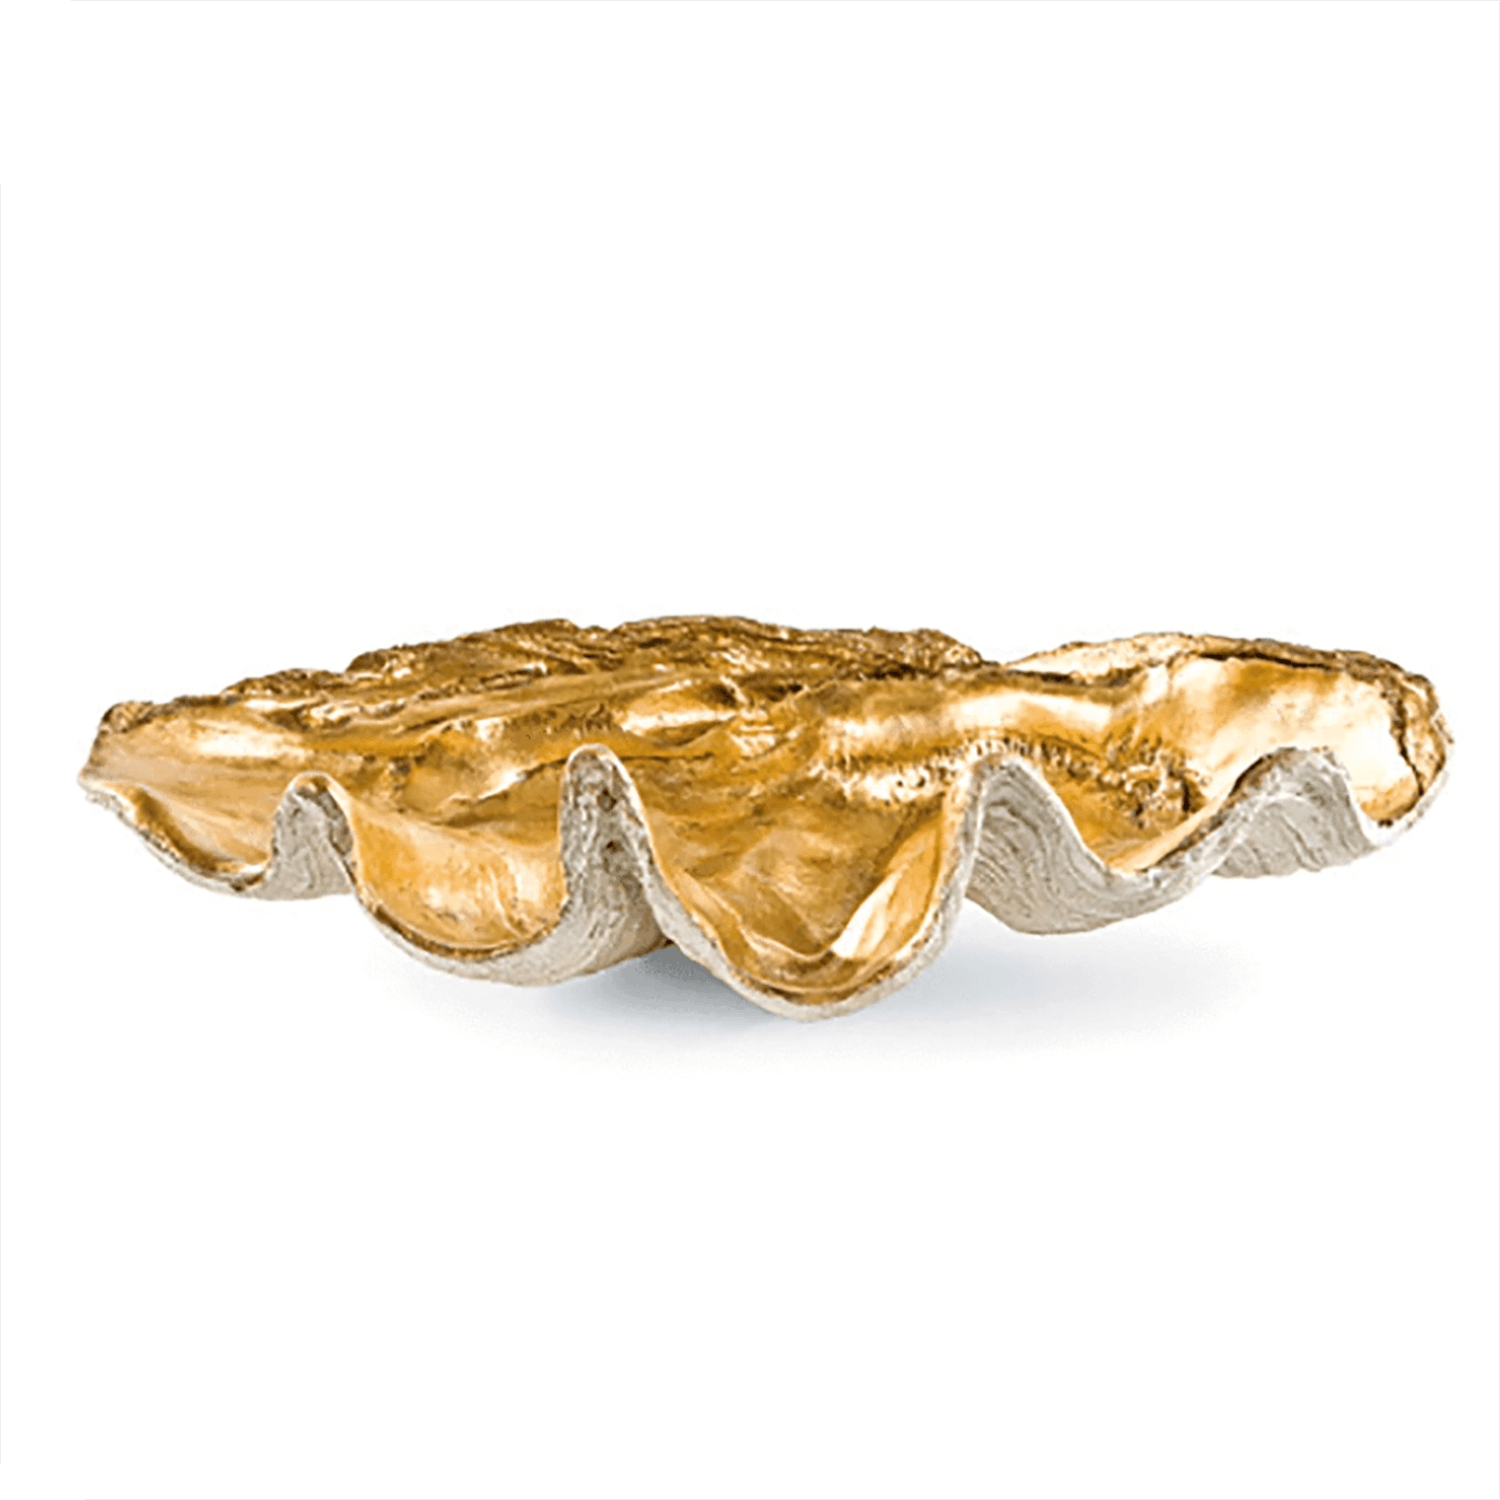 Image of Gold Clam Bowl